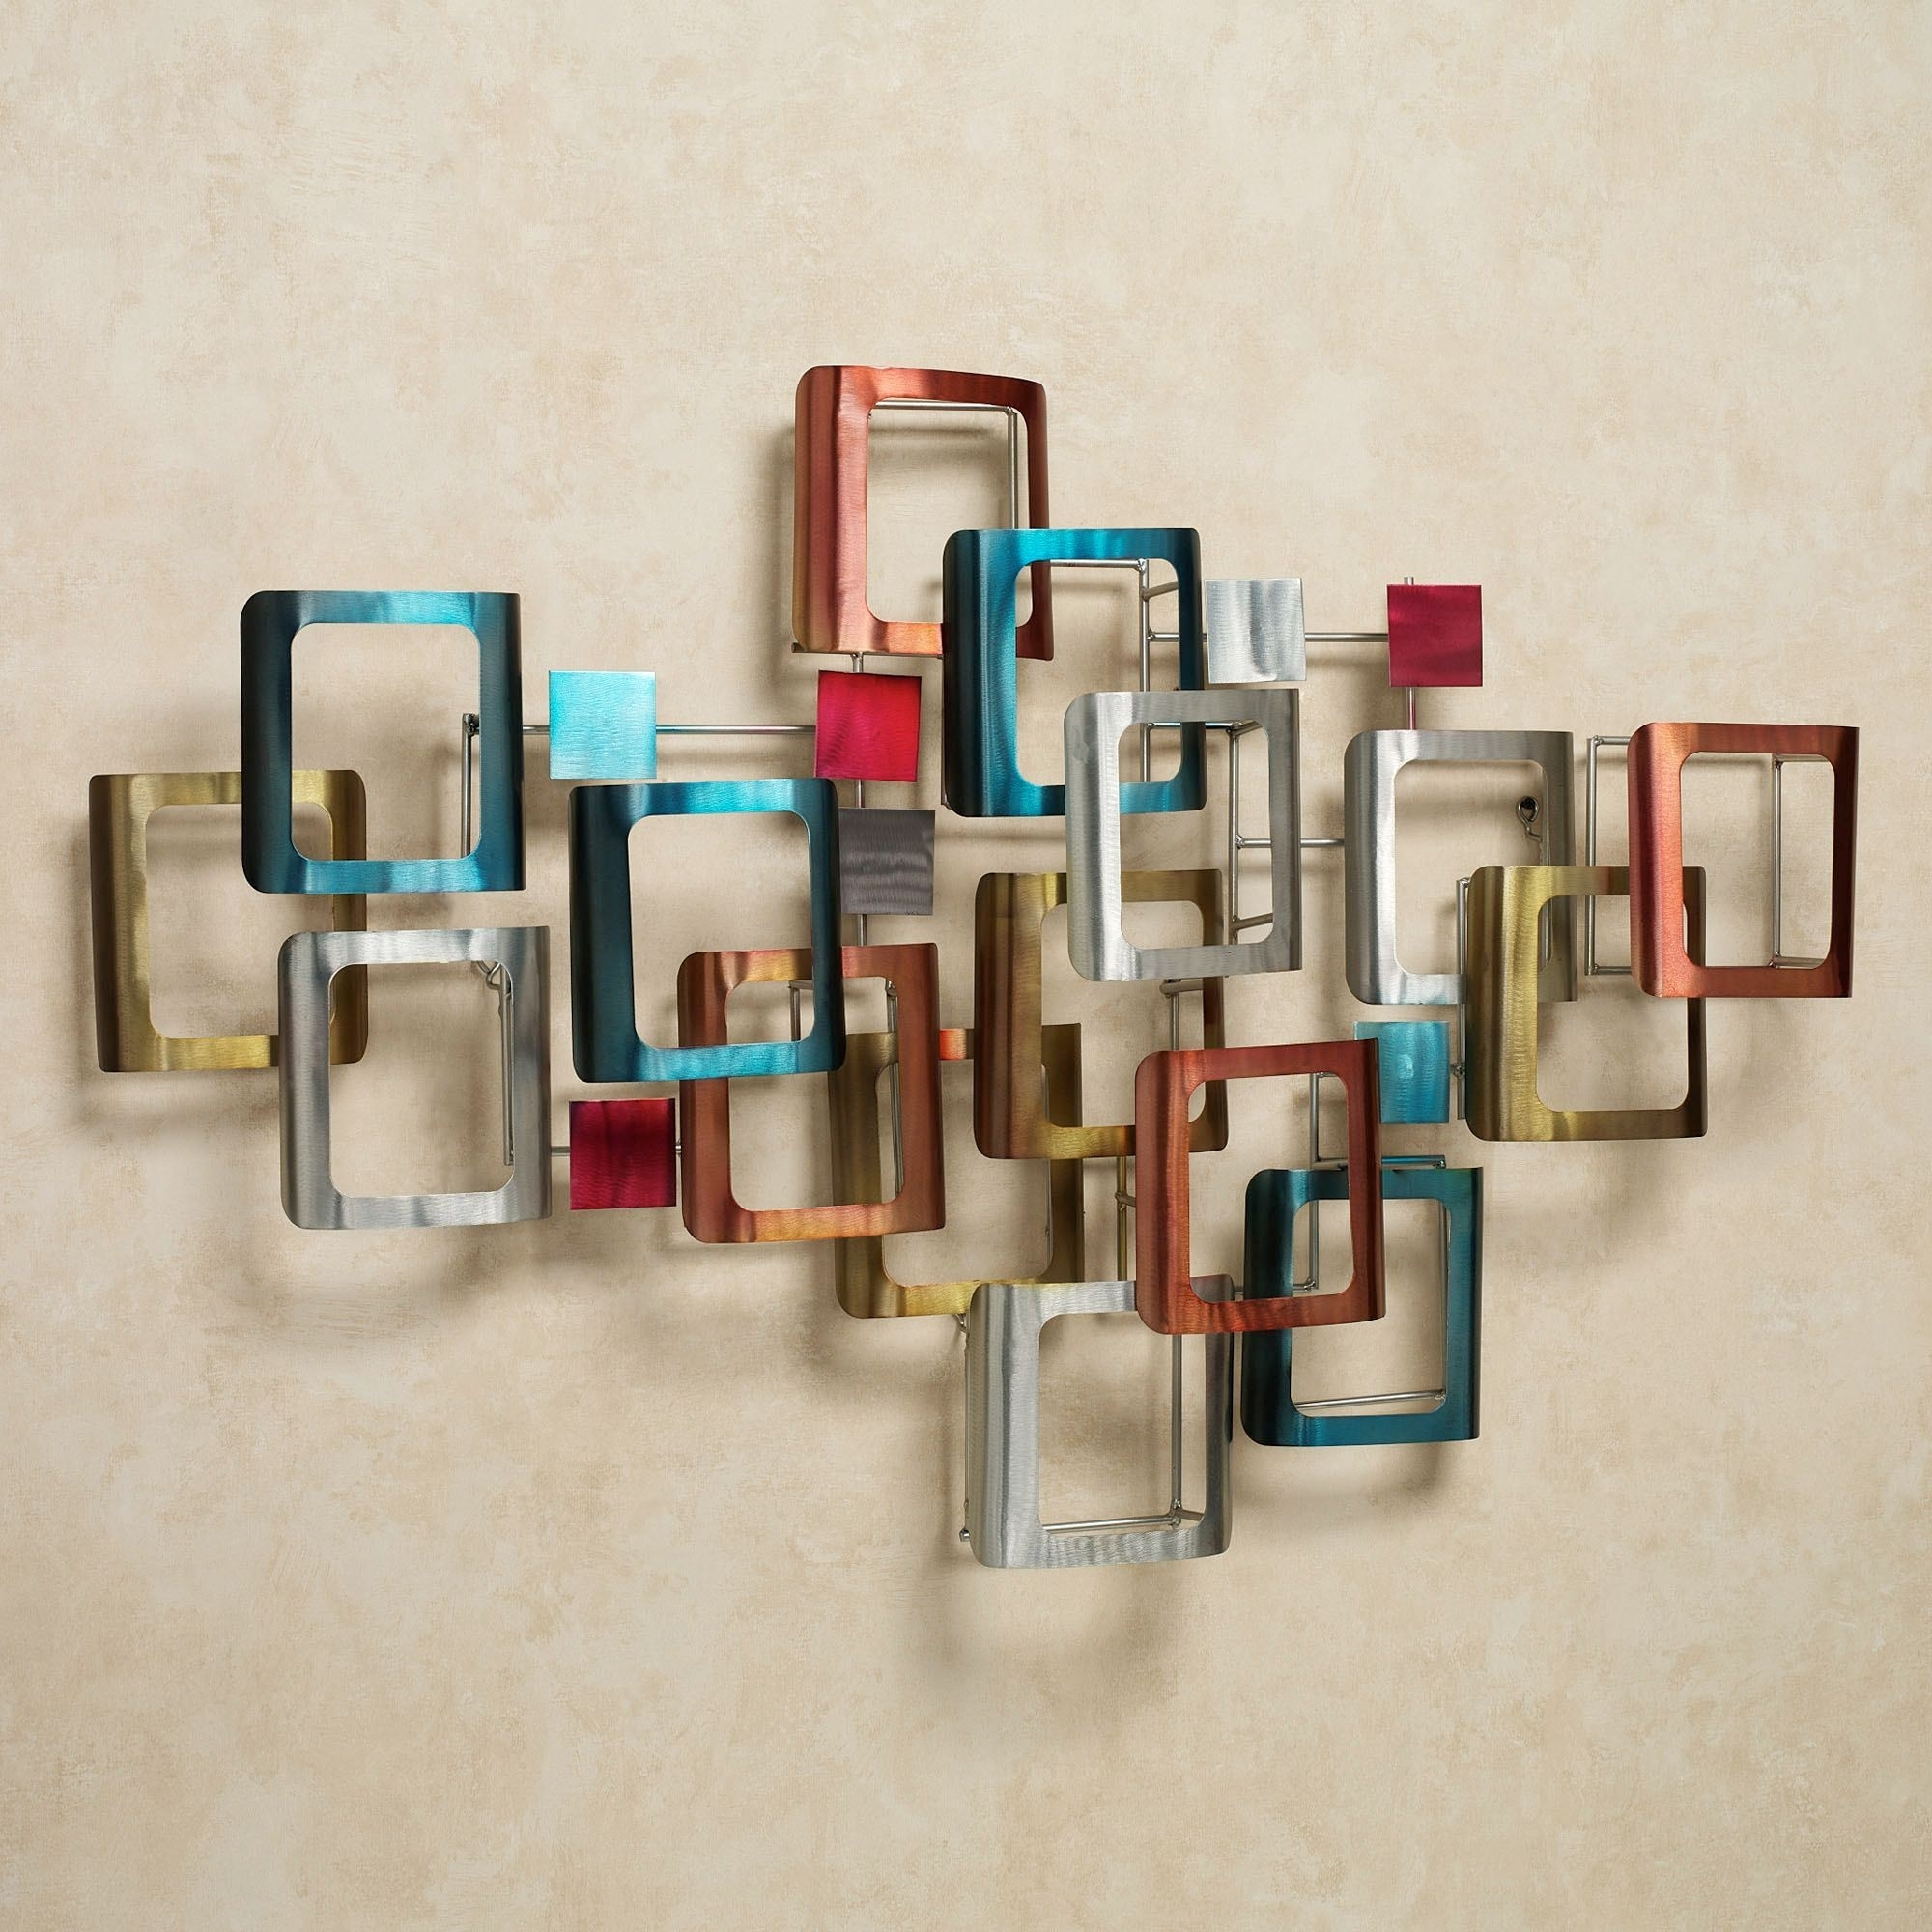 Pinterest Regarding Recent Sculpture Abstract Wall Art (View 14 of 20)